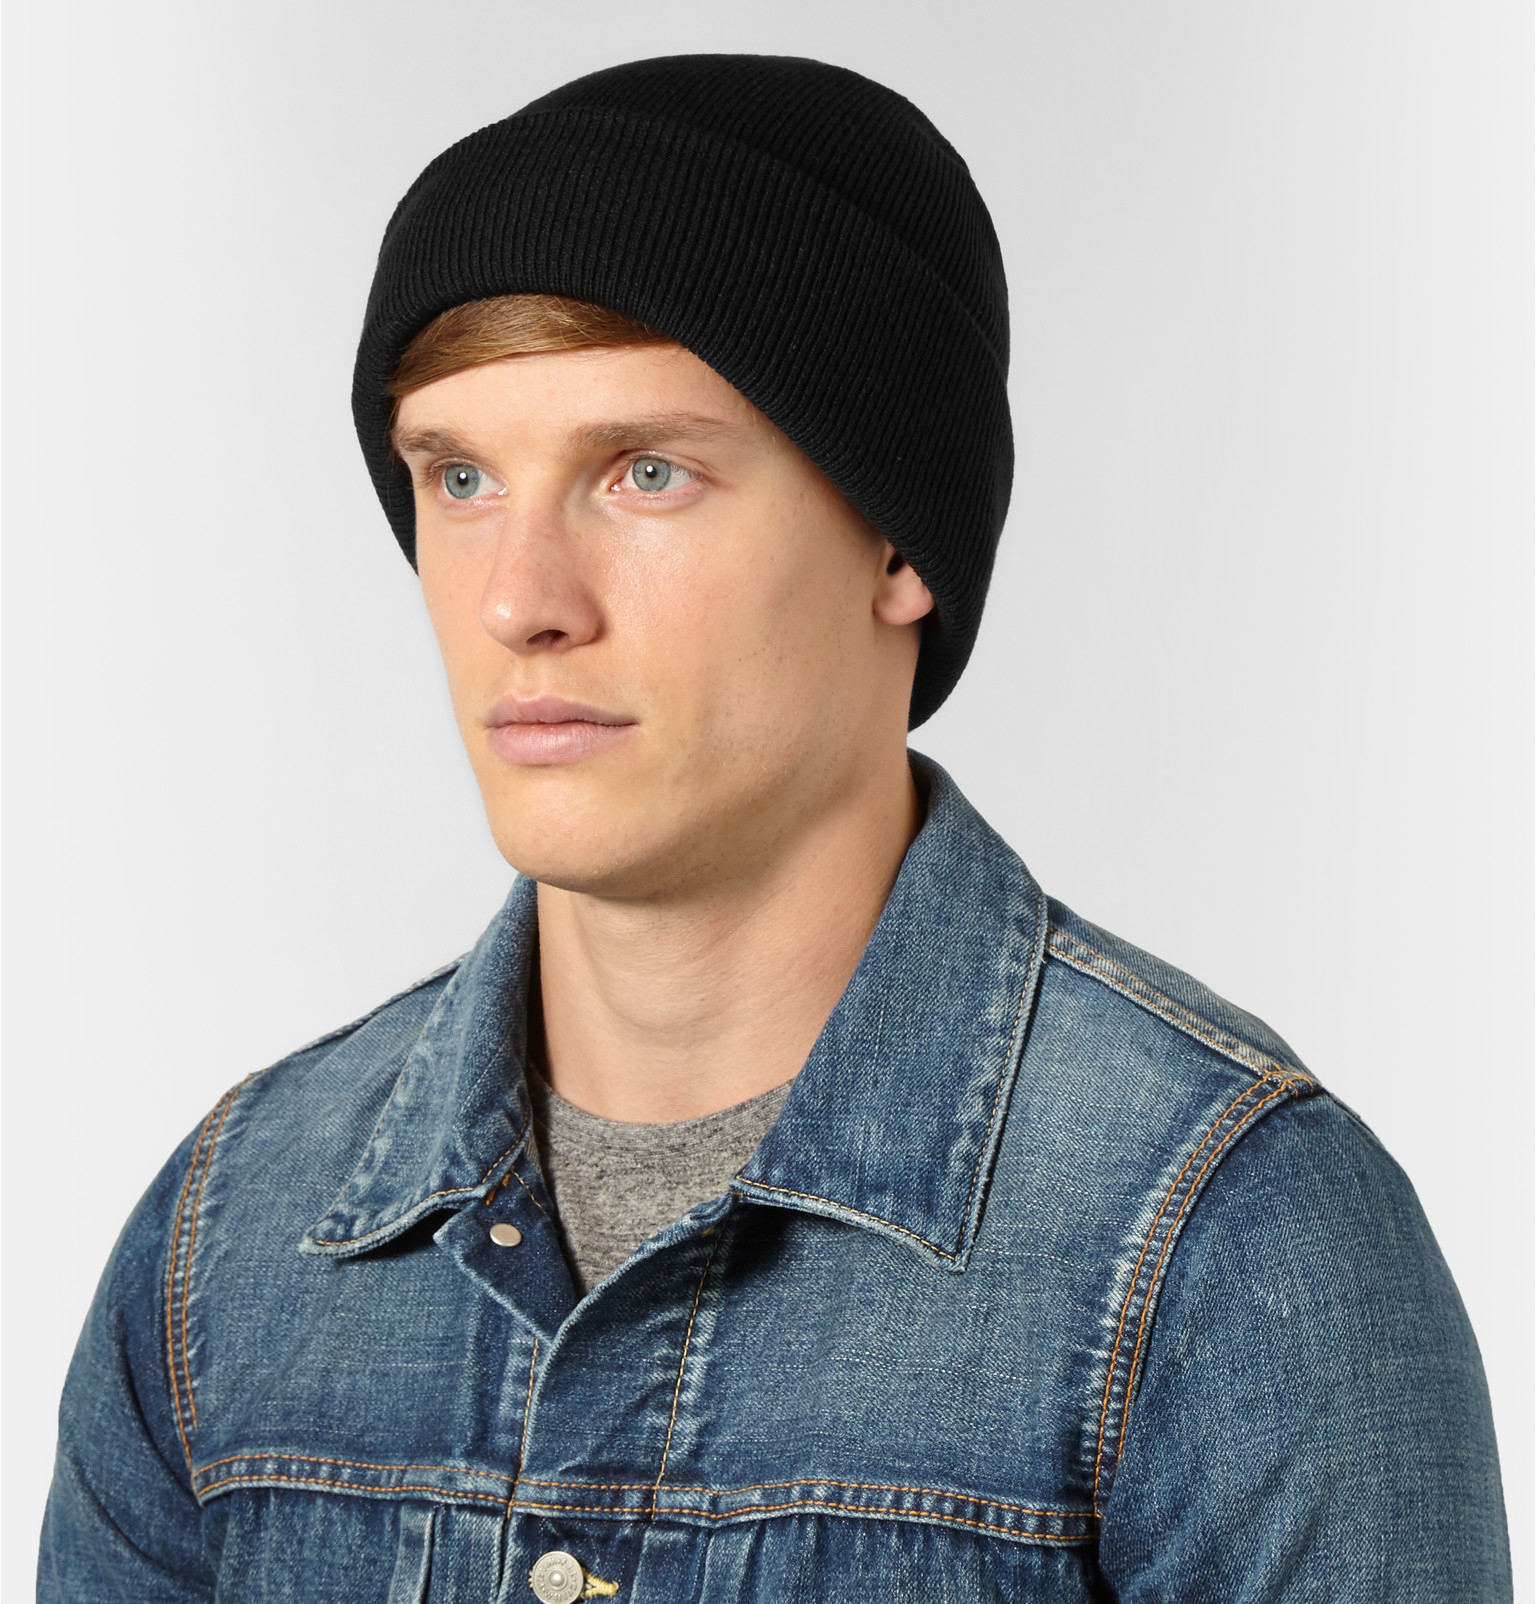 52d7b1a609e J.Crew Ribbed-knit Beanie in Black for Men - Lyst